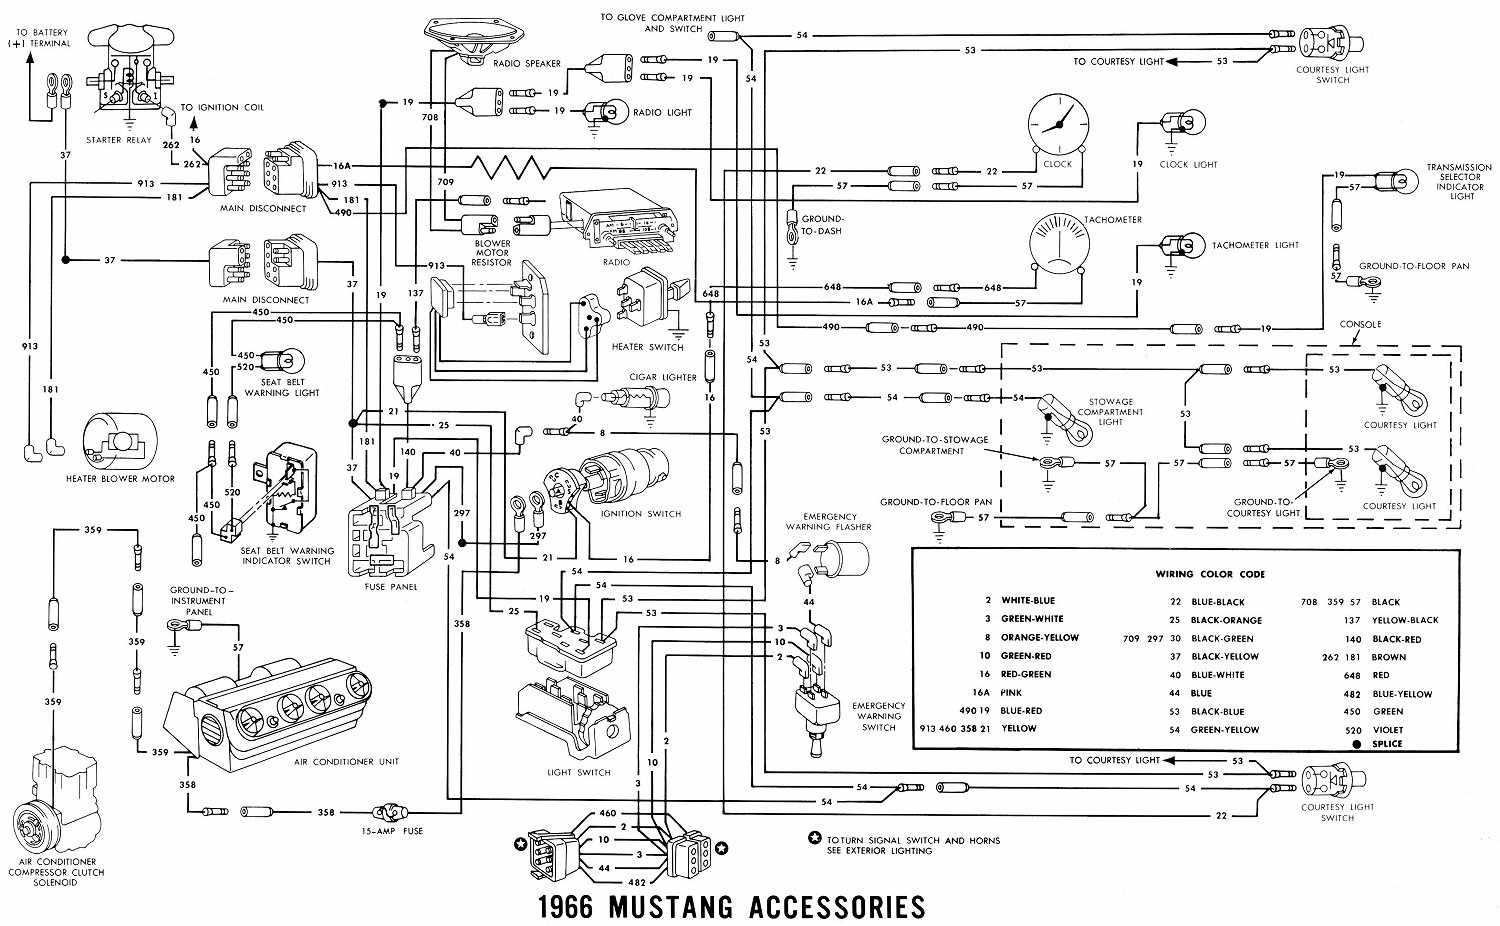 1966 Ford Mustang Accessories on peugeot 206 fuse box guide